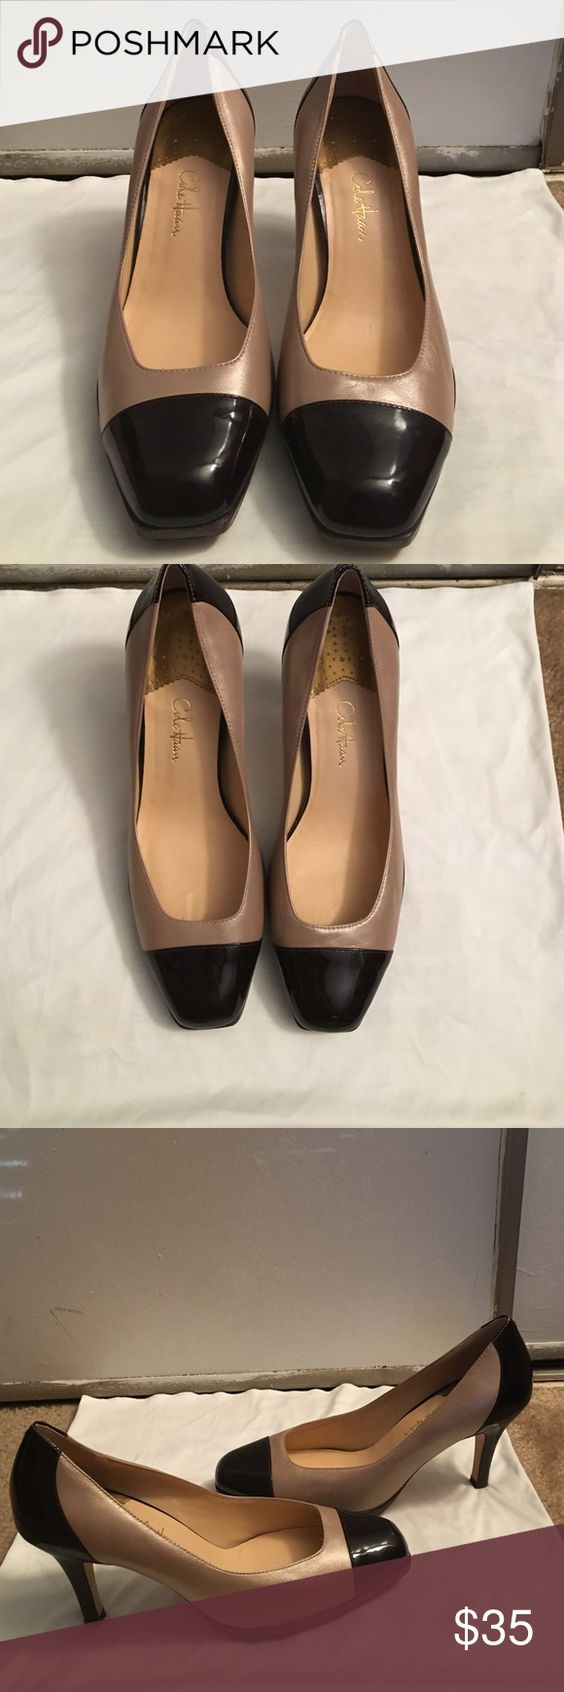 Cole Haan Shoes brand new Cole Haan shoes, very expensive, great condition. Cole Haan Shoes Heels